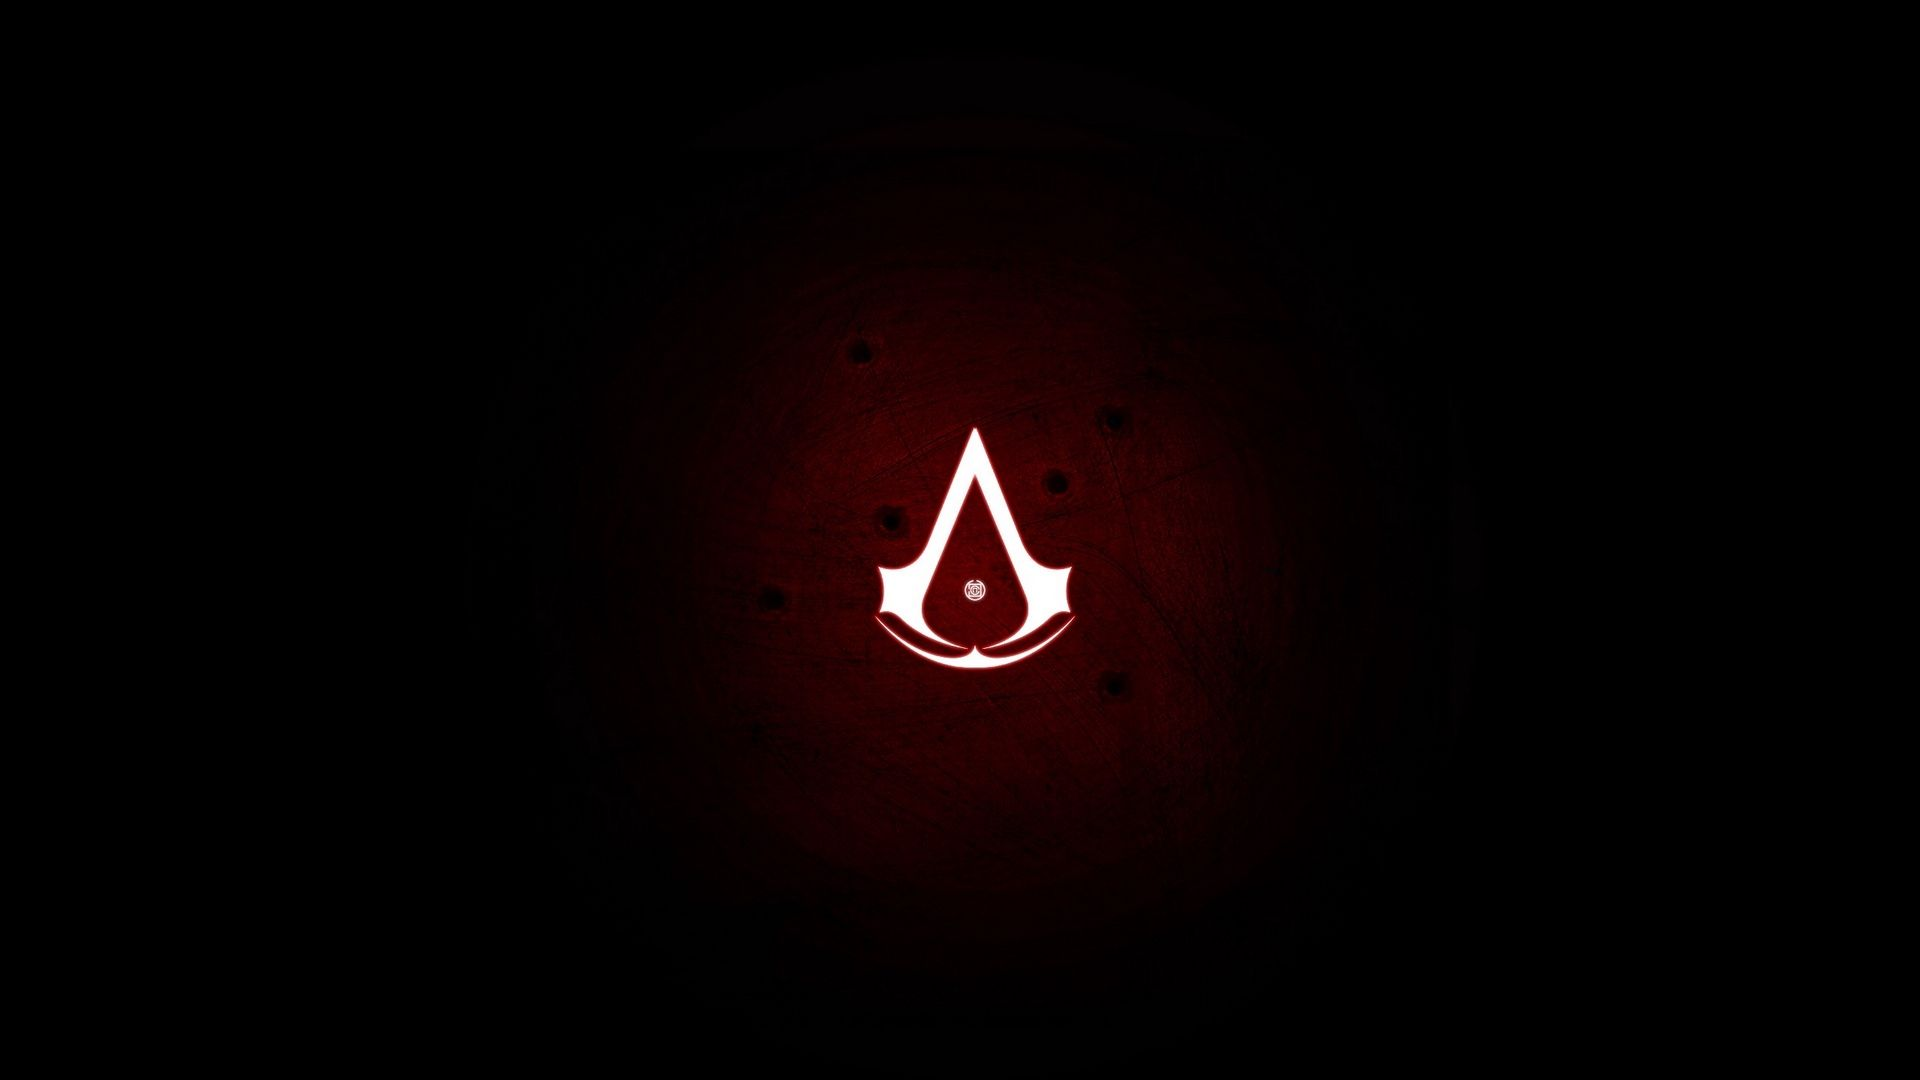 X Assassins Creed, Assassins Symbol, Red, Background, Dots Wallpaper Full